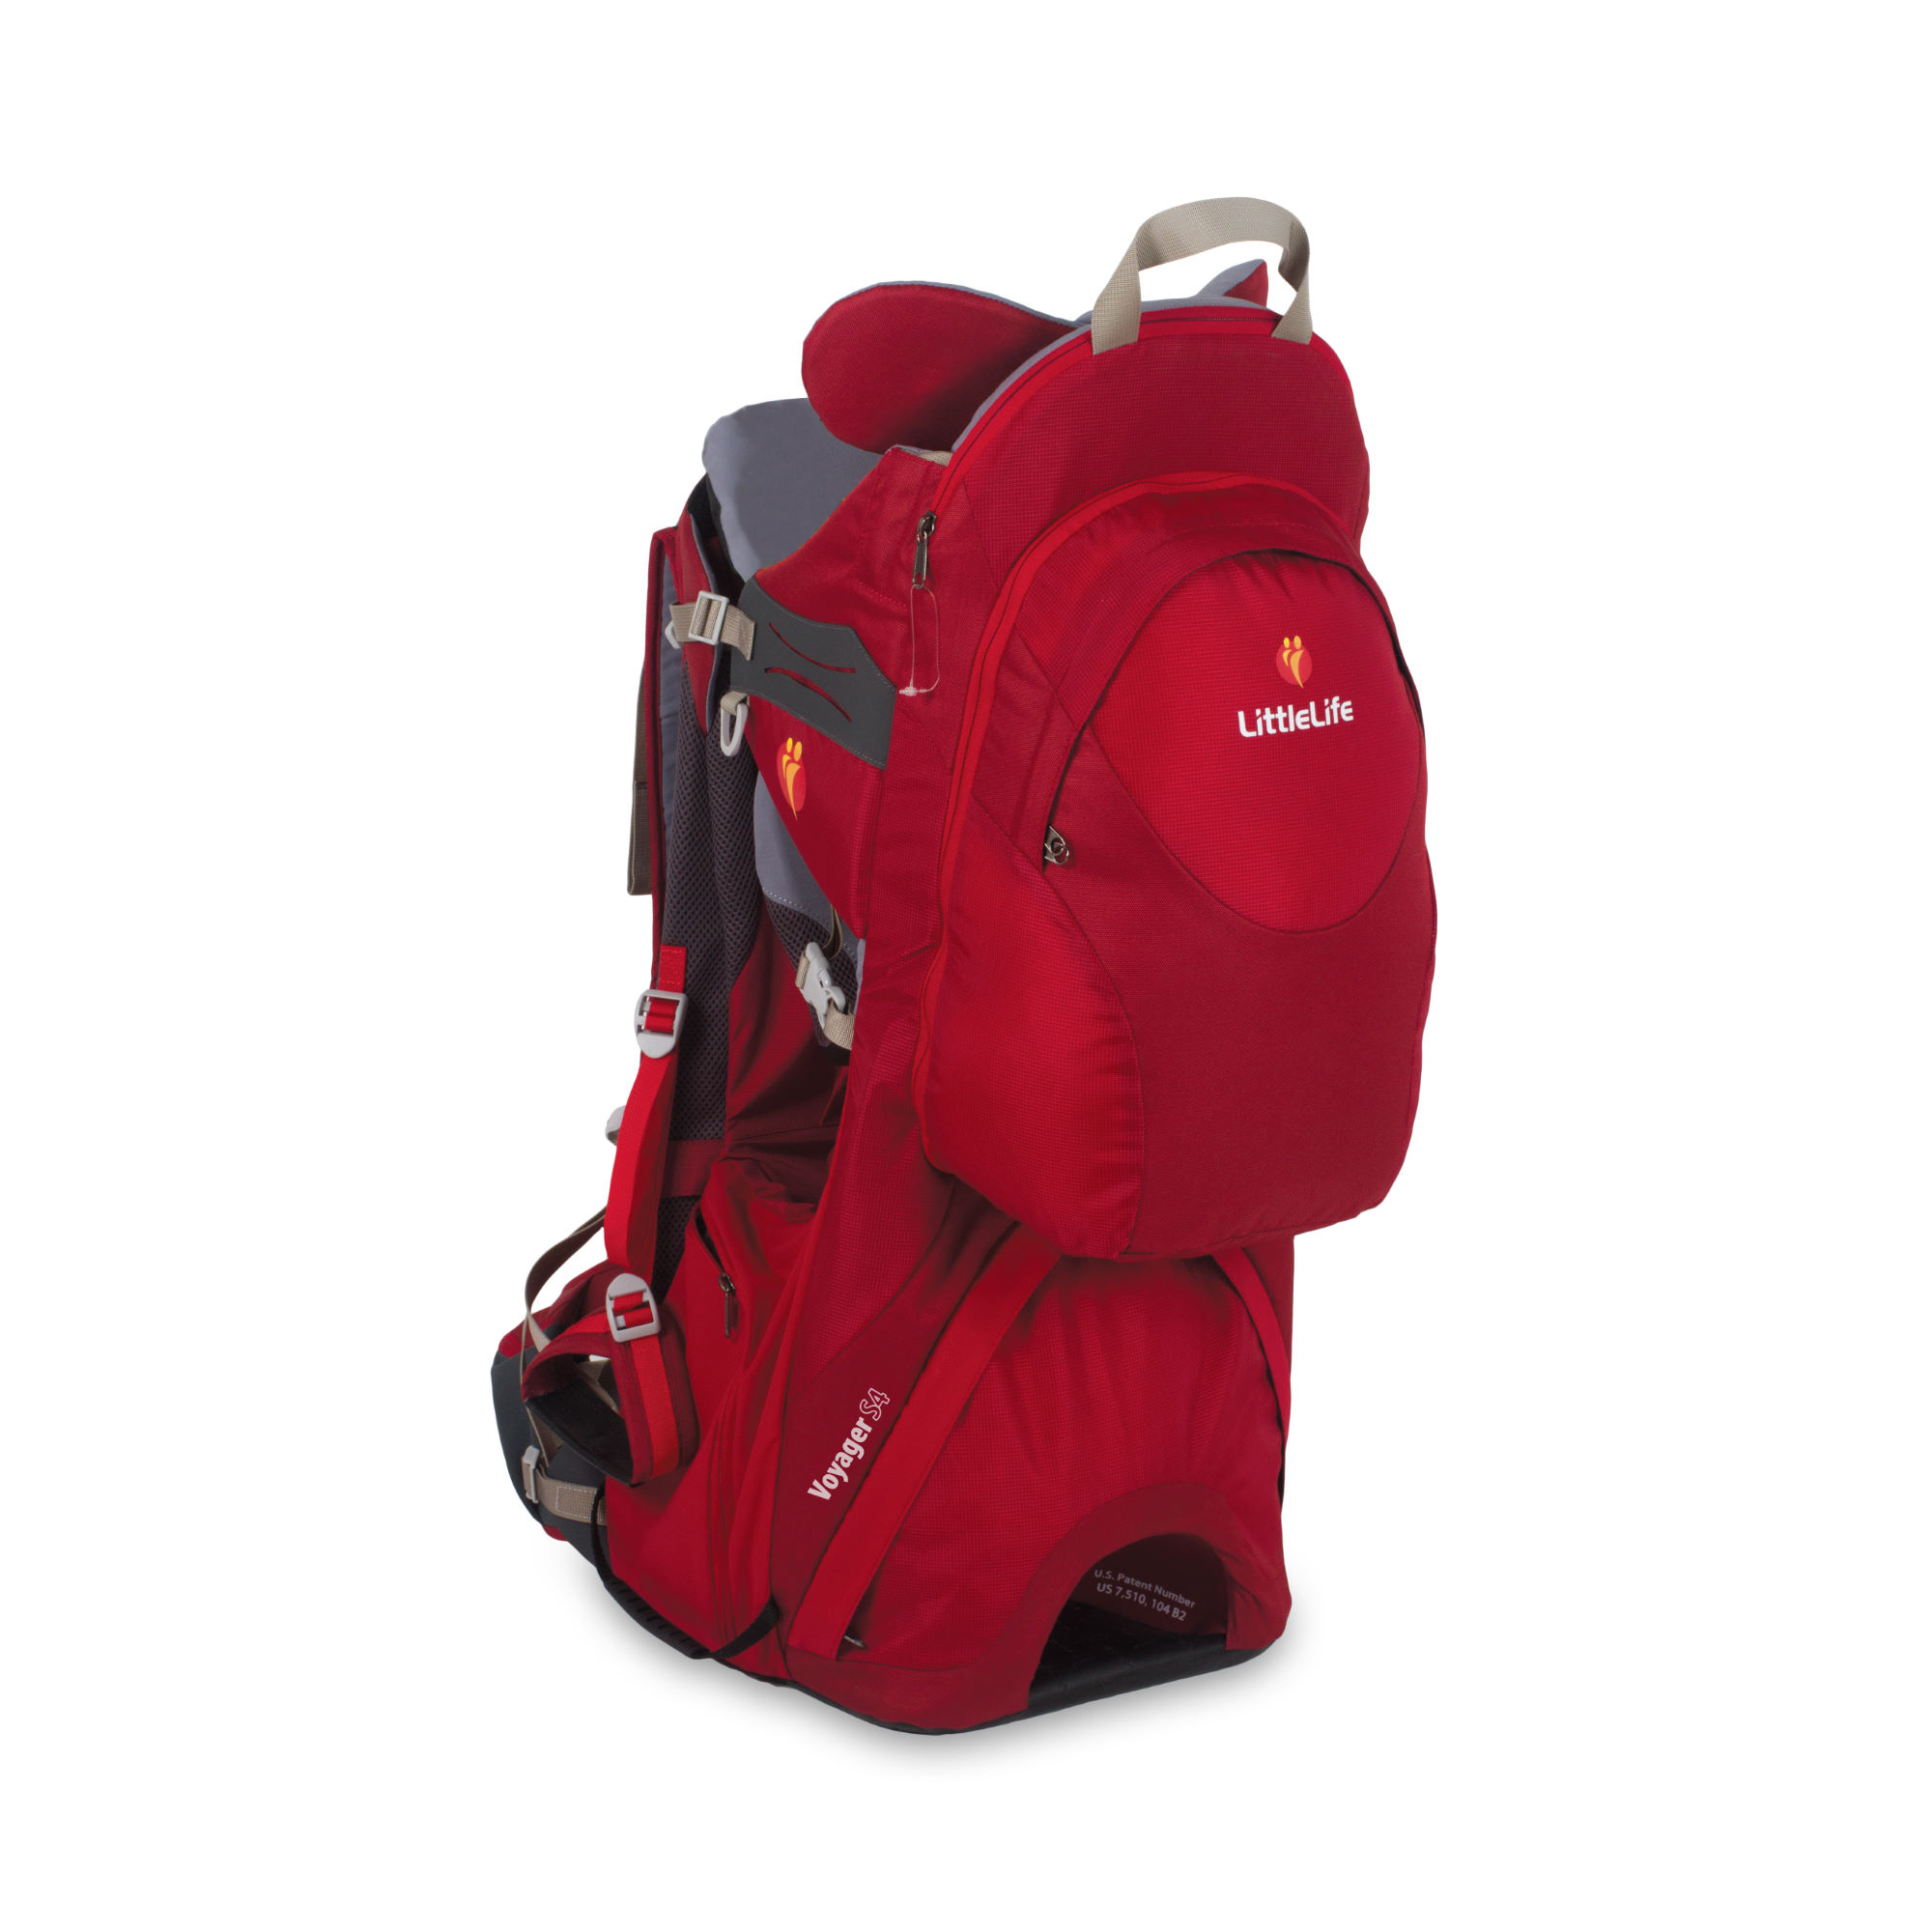 Wiggle LittleLife Voyager S4 Child Carrier